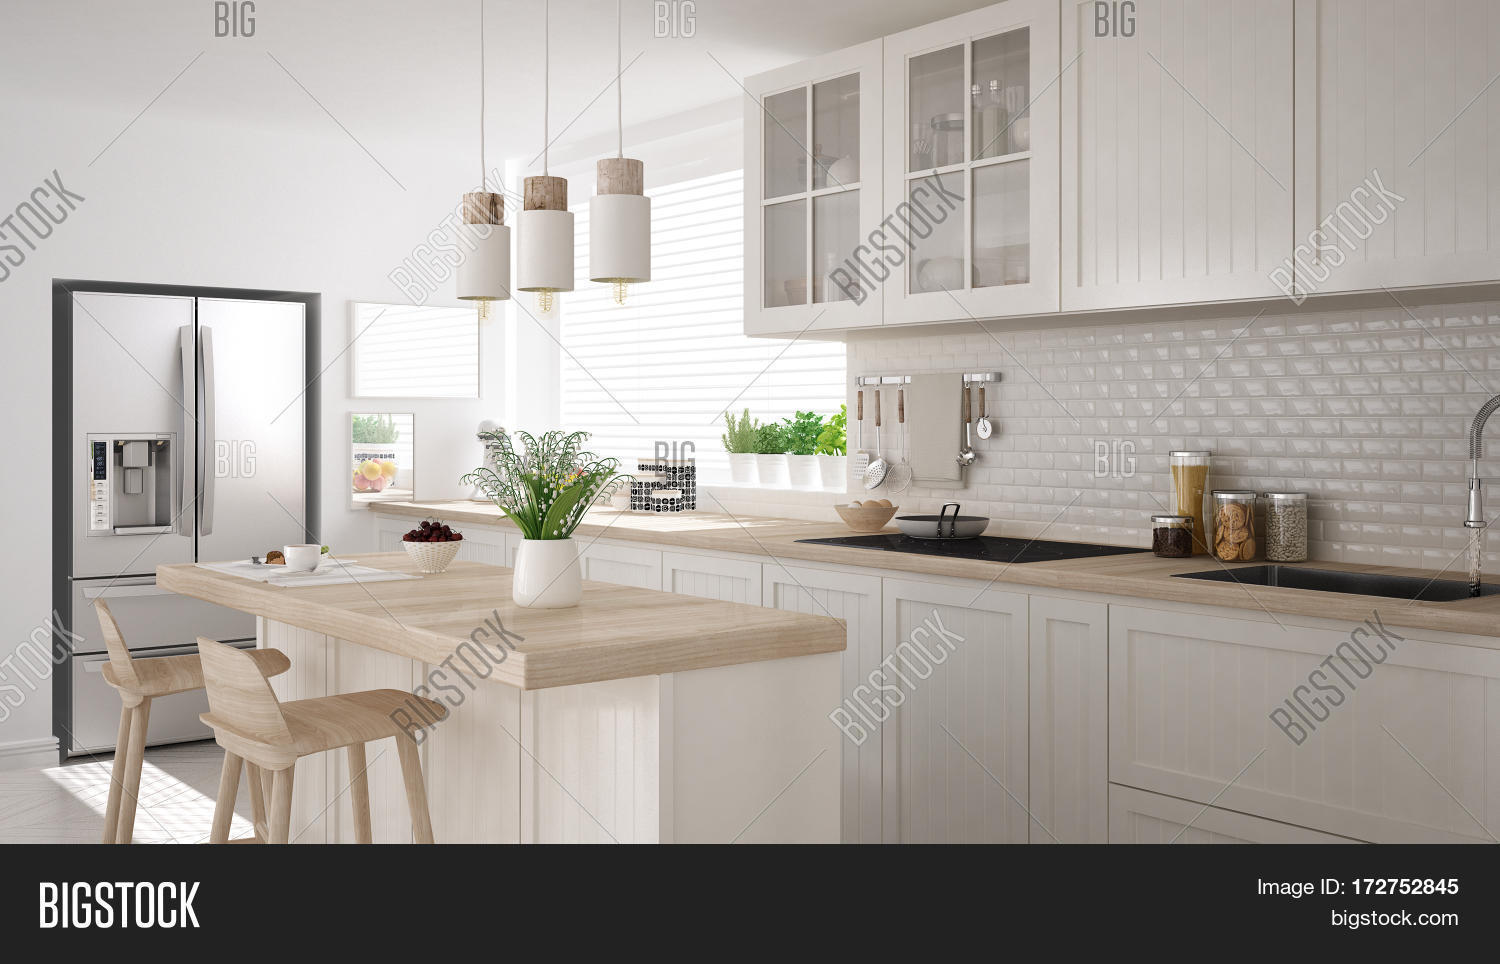 Scandinavian classic kitchen with wooden and white details minimalistic interior design 3d illustration